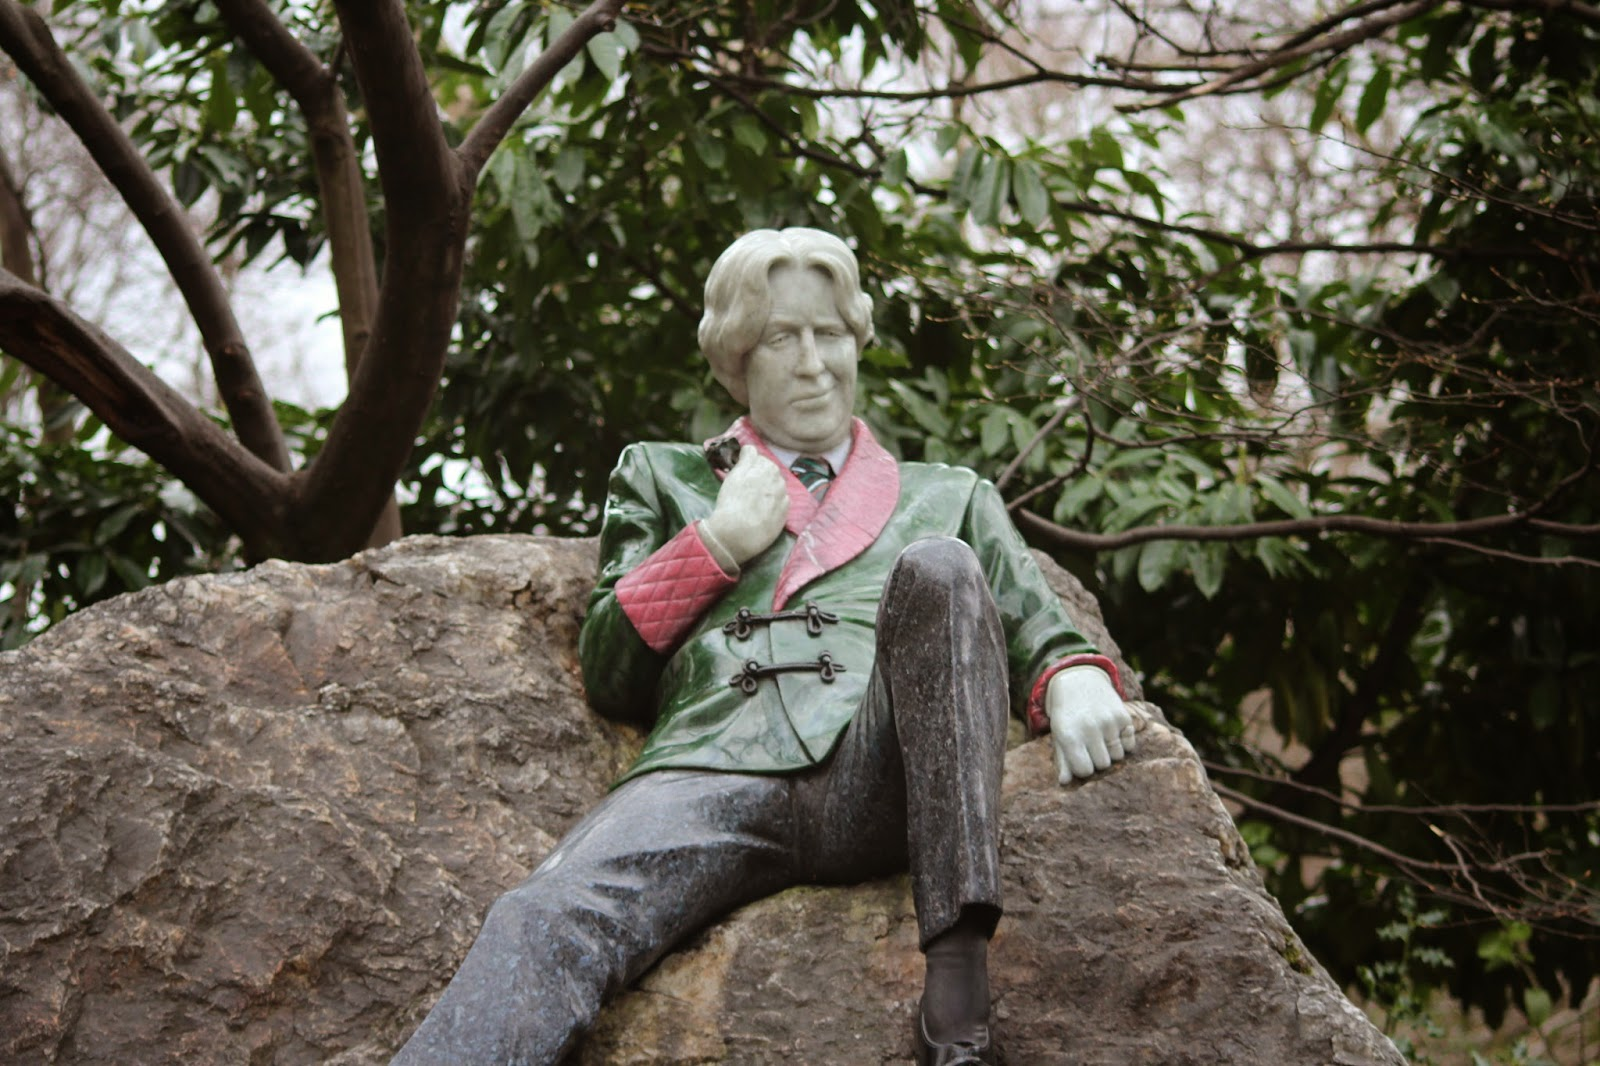 dublin, travel, sculpture, art, oscar wilde, literatrure